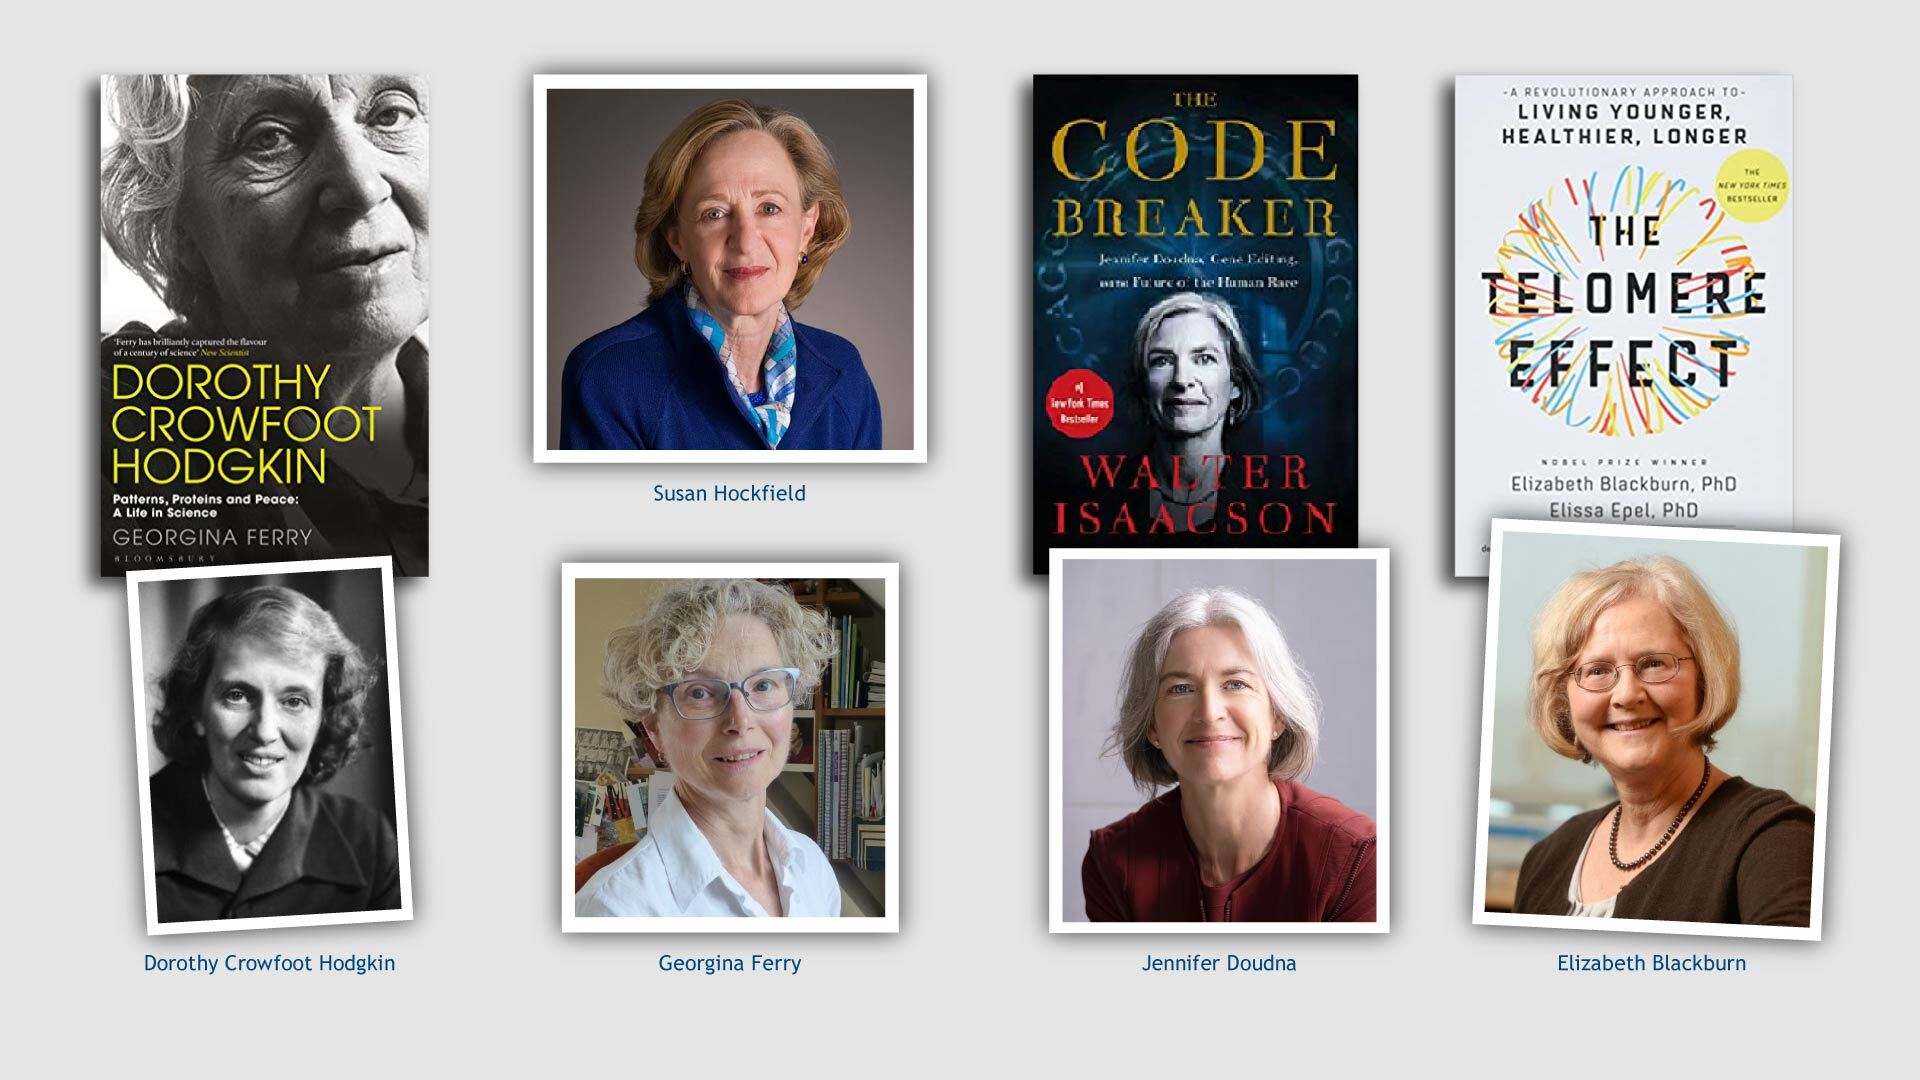 image of Hockfield, Ferry, Hodgkin, Doudna, and Blackburn with covers from their books